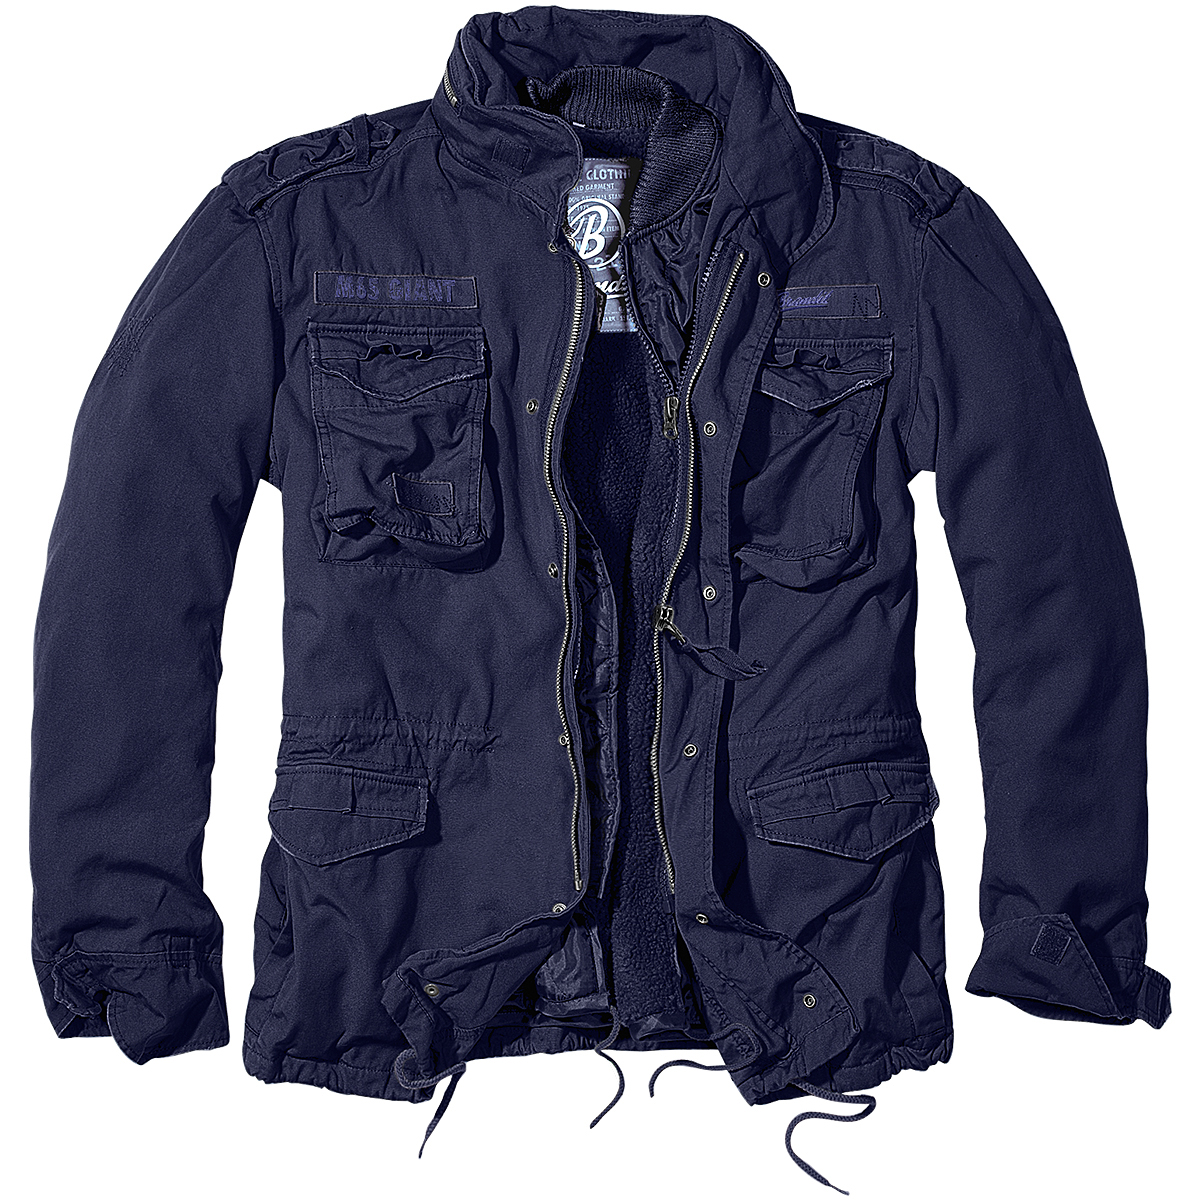 US Navy Jacket Reversible Detachable Hood - Fleece and Nylon All Weather Jacket. from $ 49 out of 5 stars 9. Bradford Exchange. United States Navy Pride Men's Hoodie With US Flag by The Bradford Exchange $ out of 5 stars 7. Mitchell Proffitt. Men's US Navy Windbreaker Jacket.